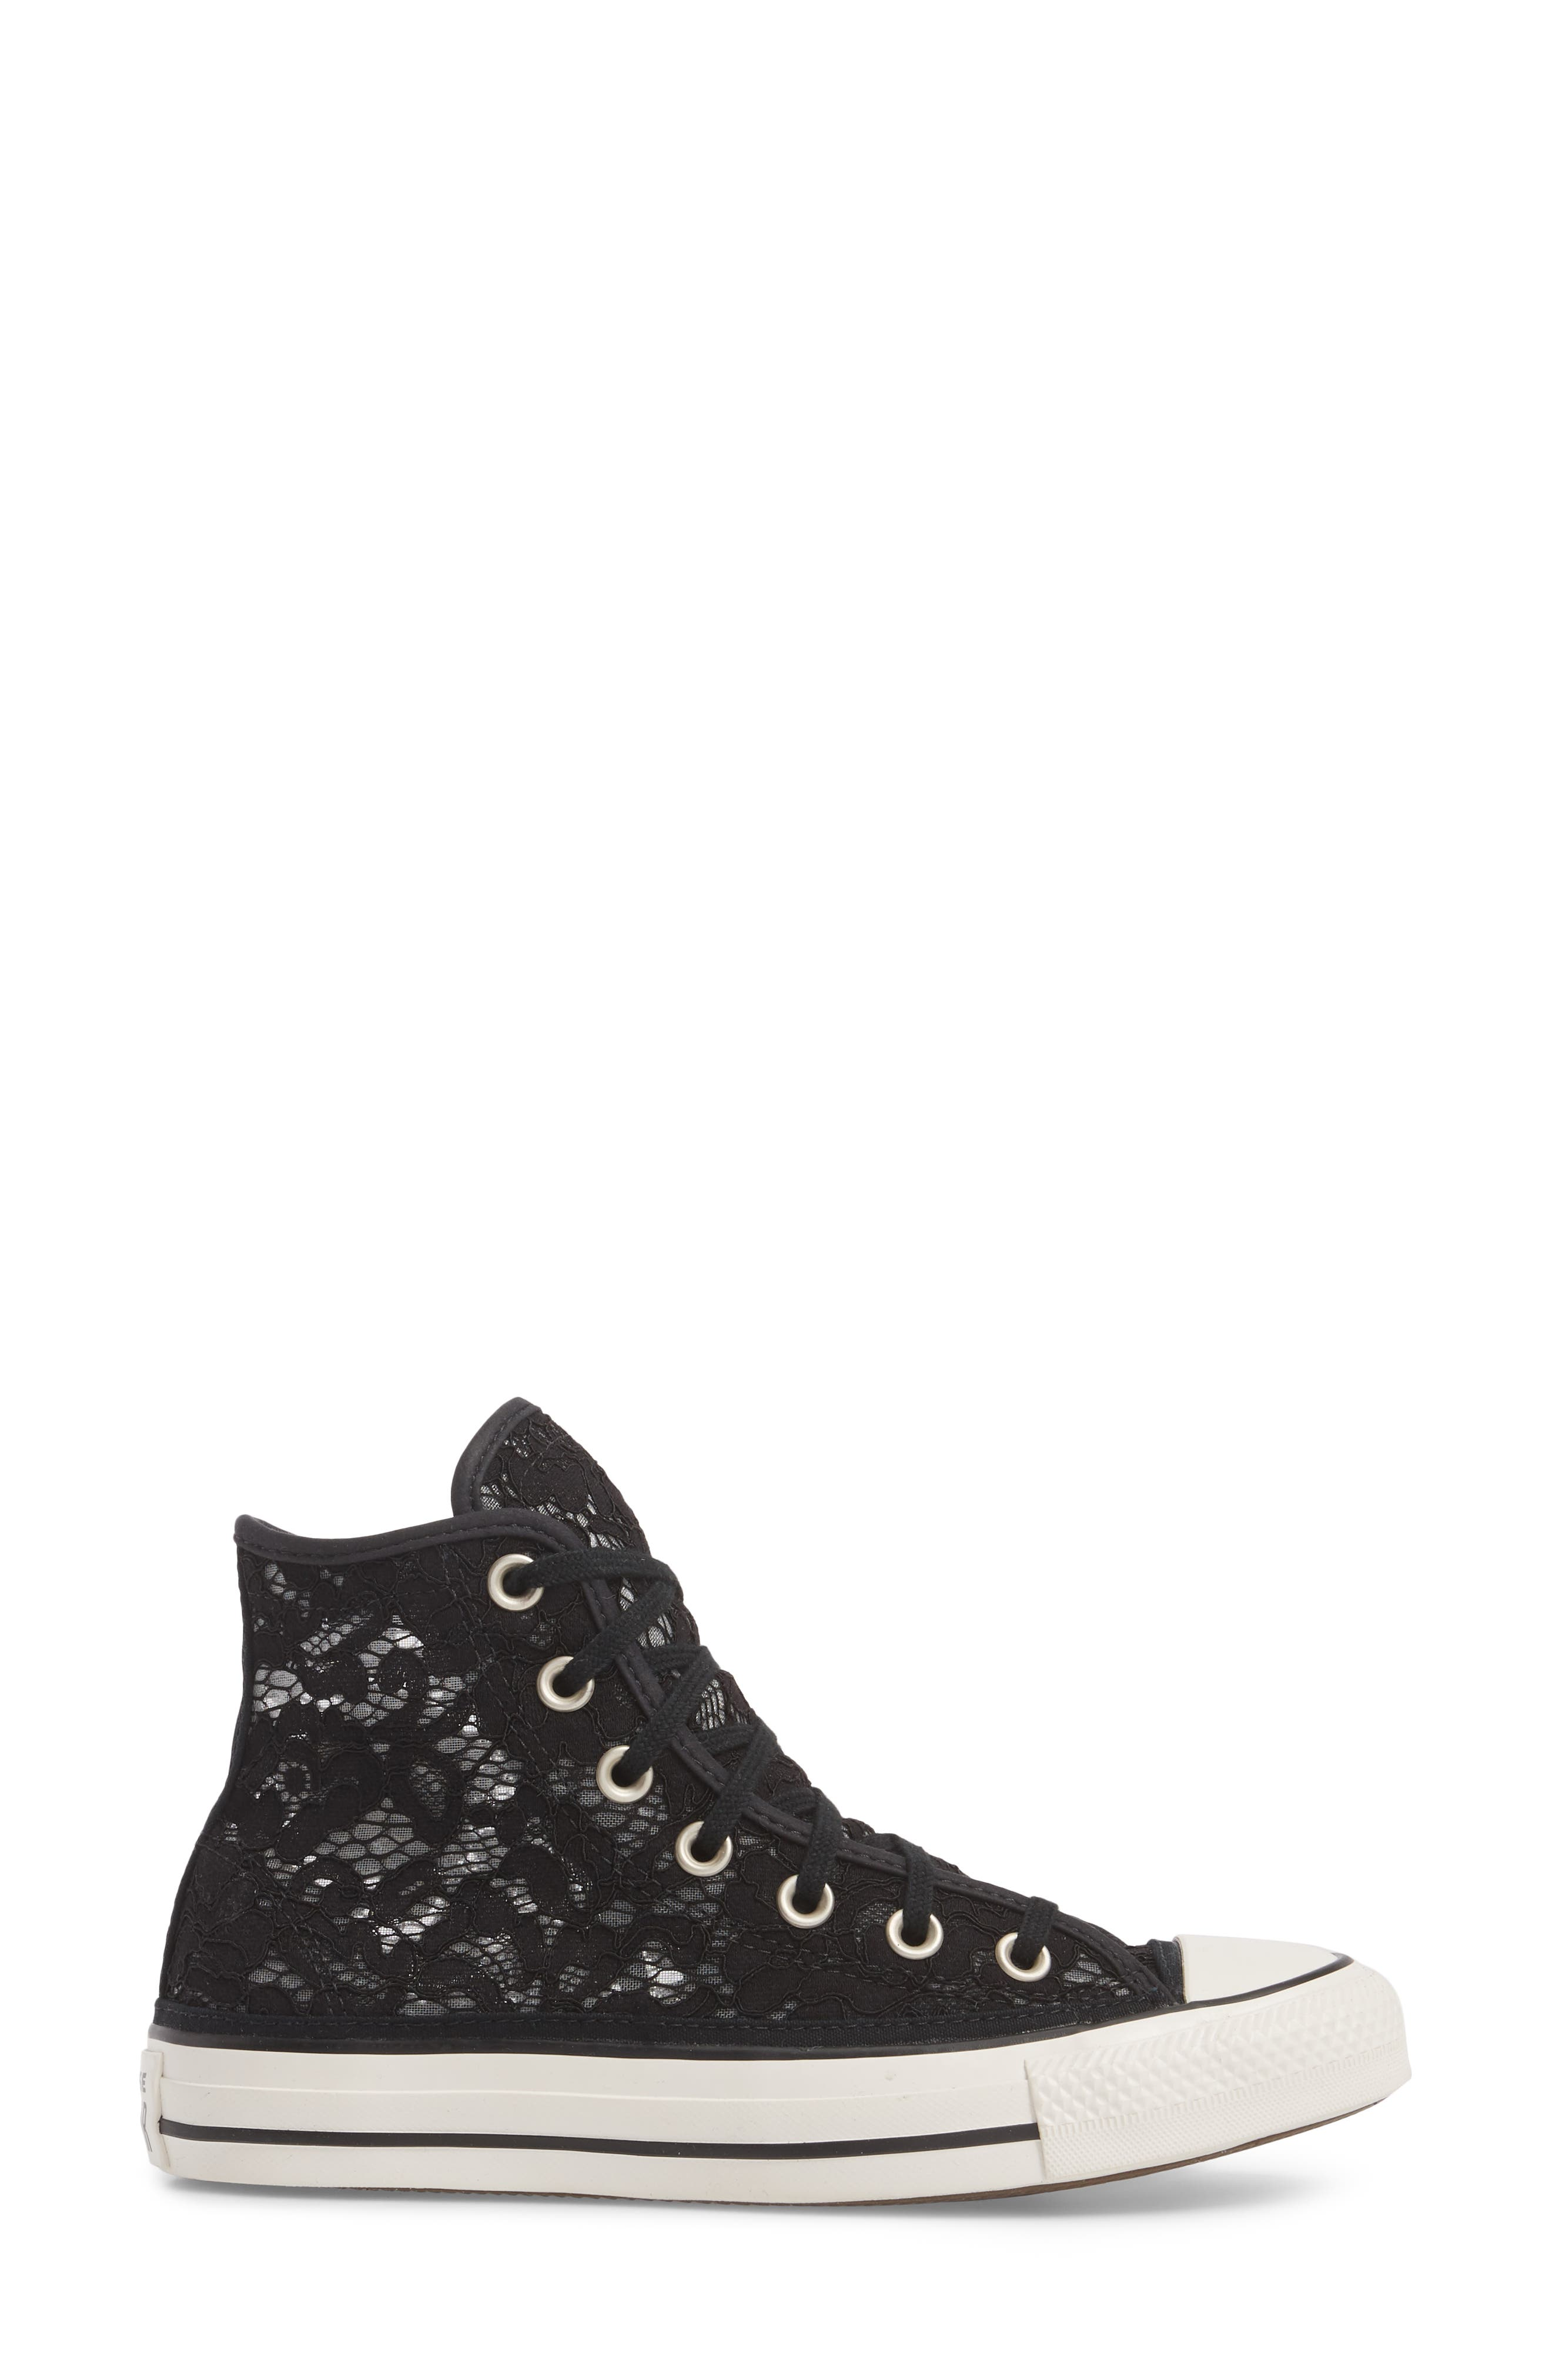 Chuck Taylor<sup>®</sup> All Star Lace High-Top Sneaker,                             Alternate thumbnail 3, color,                             Black/ White